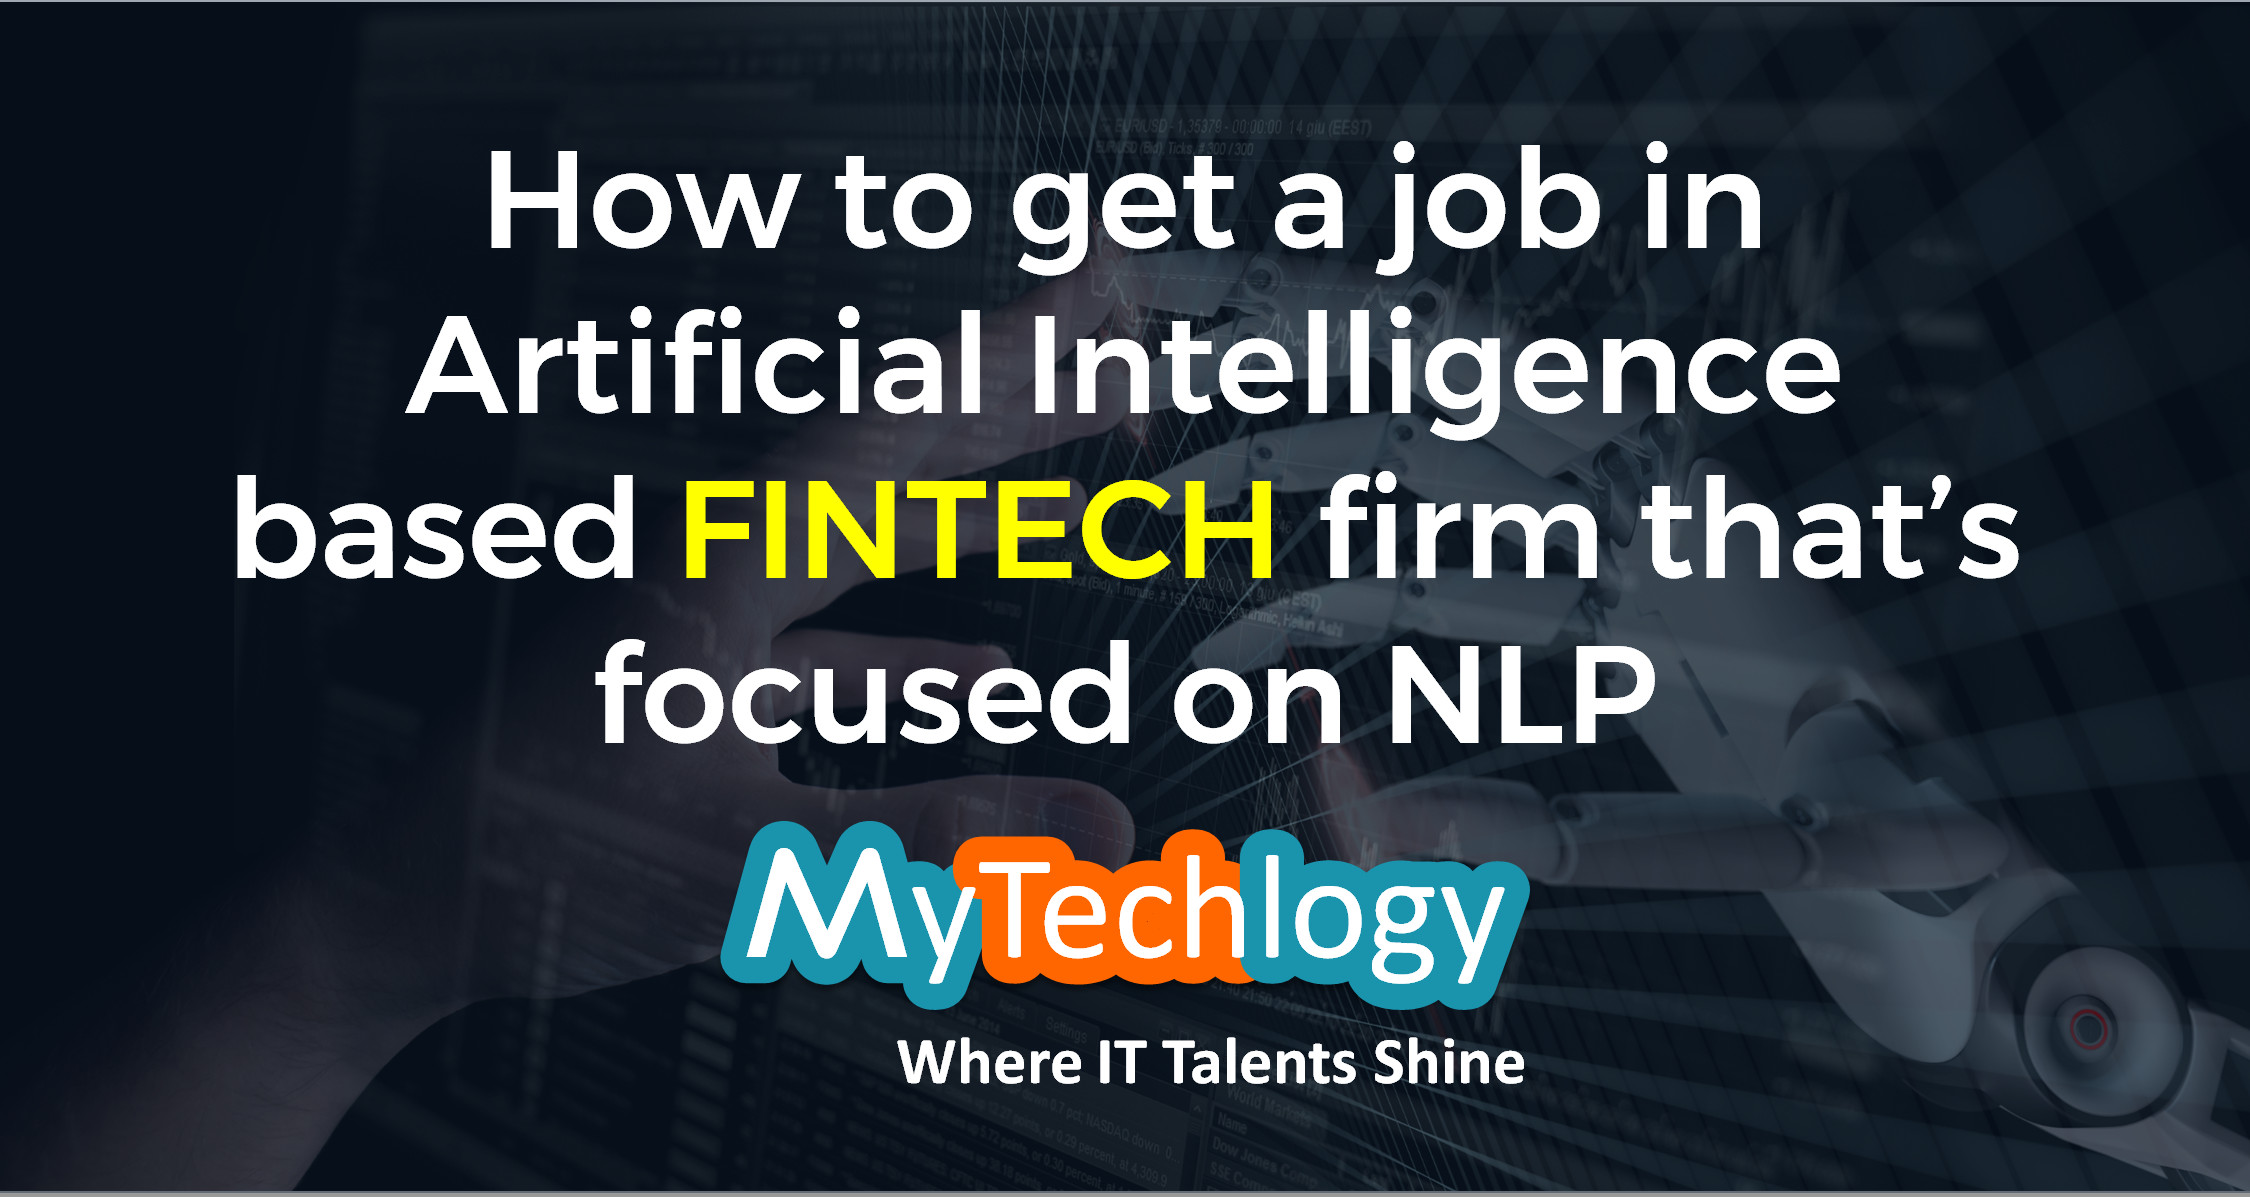 How to get a job in Artificial Intelligence based FinTech firm that's focused on NLP - Image 1